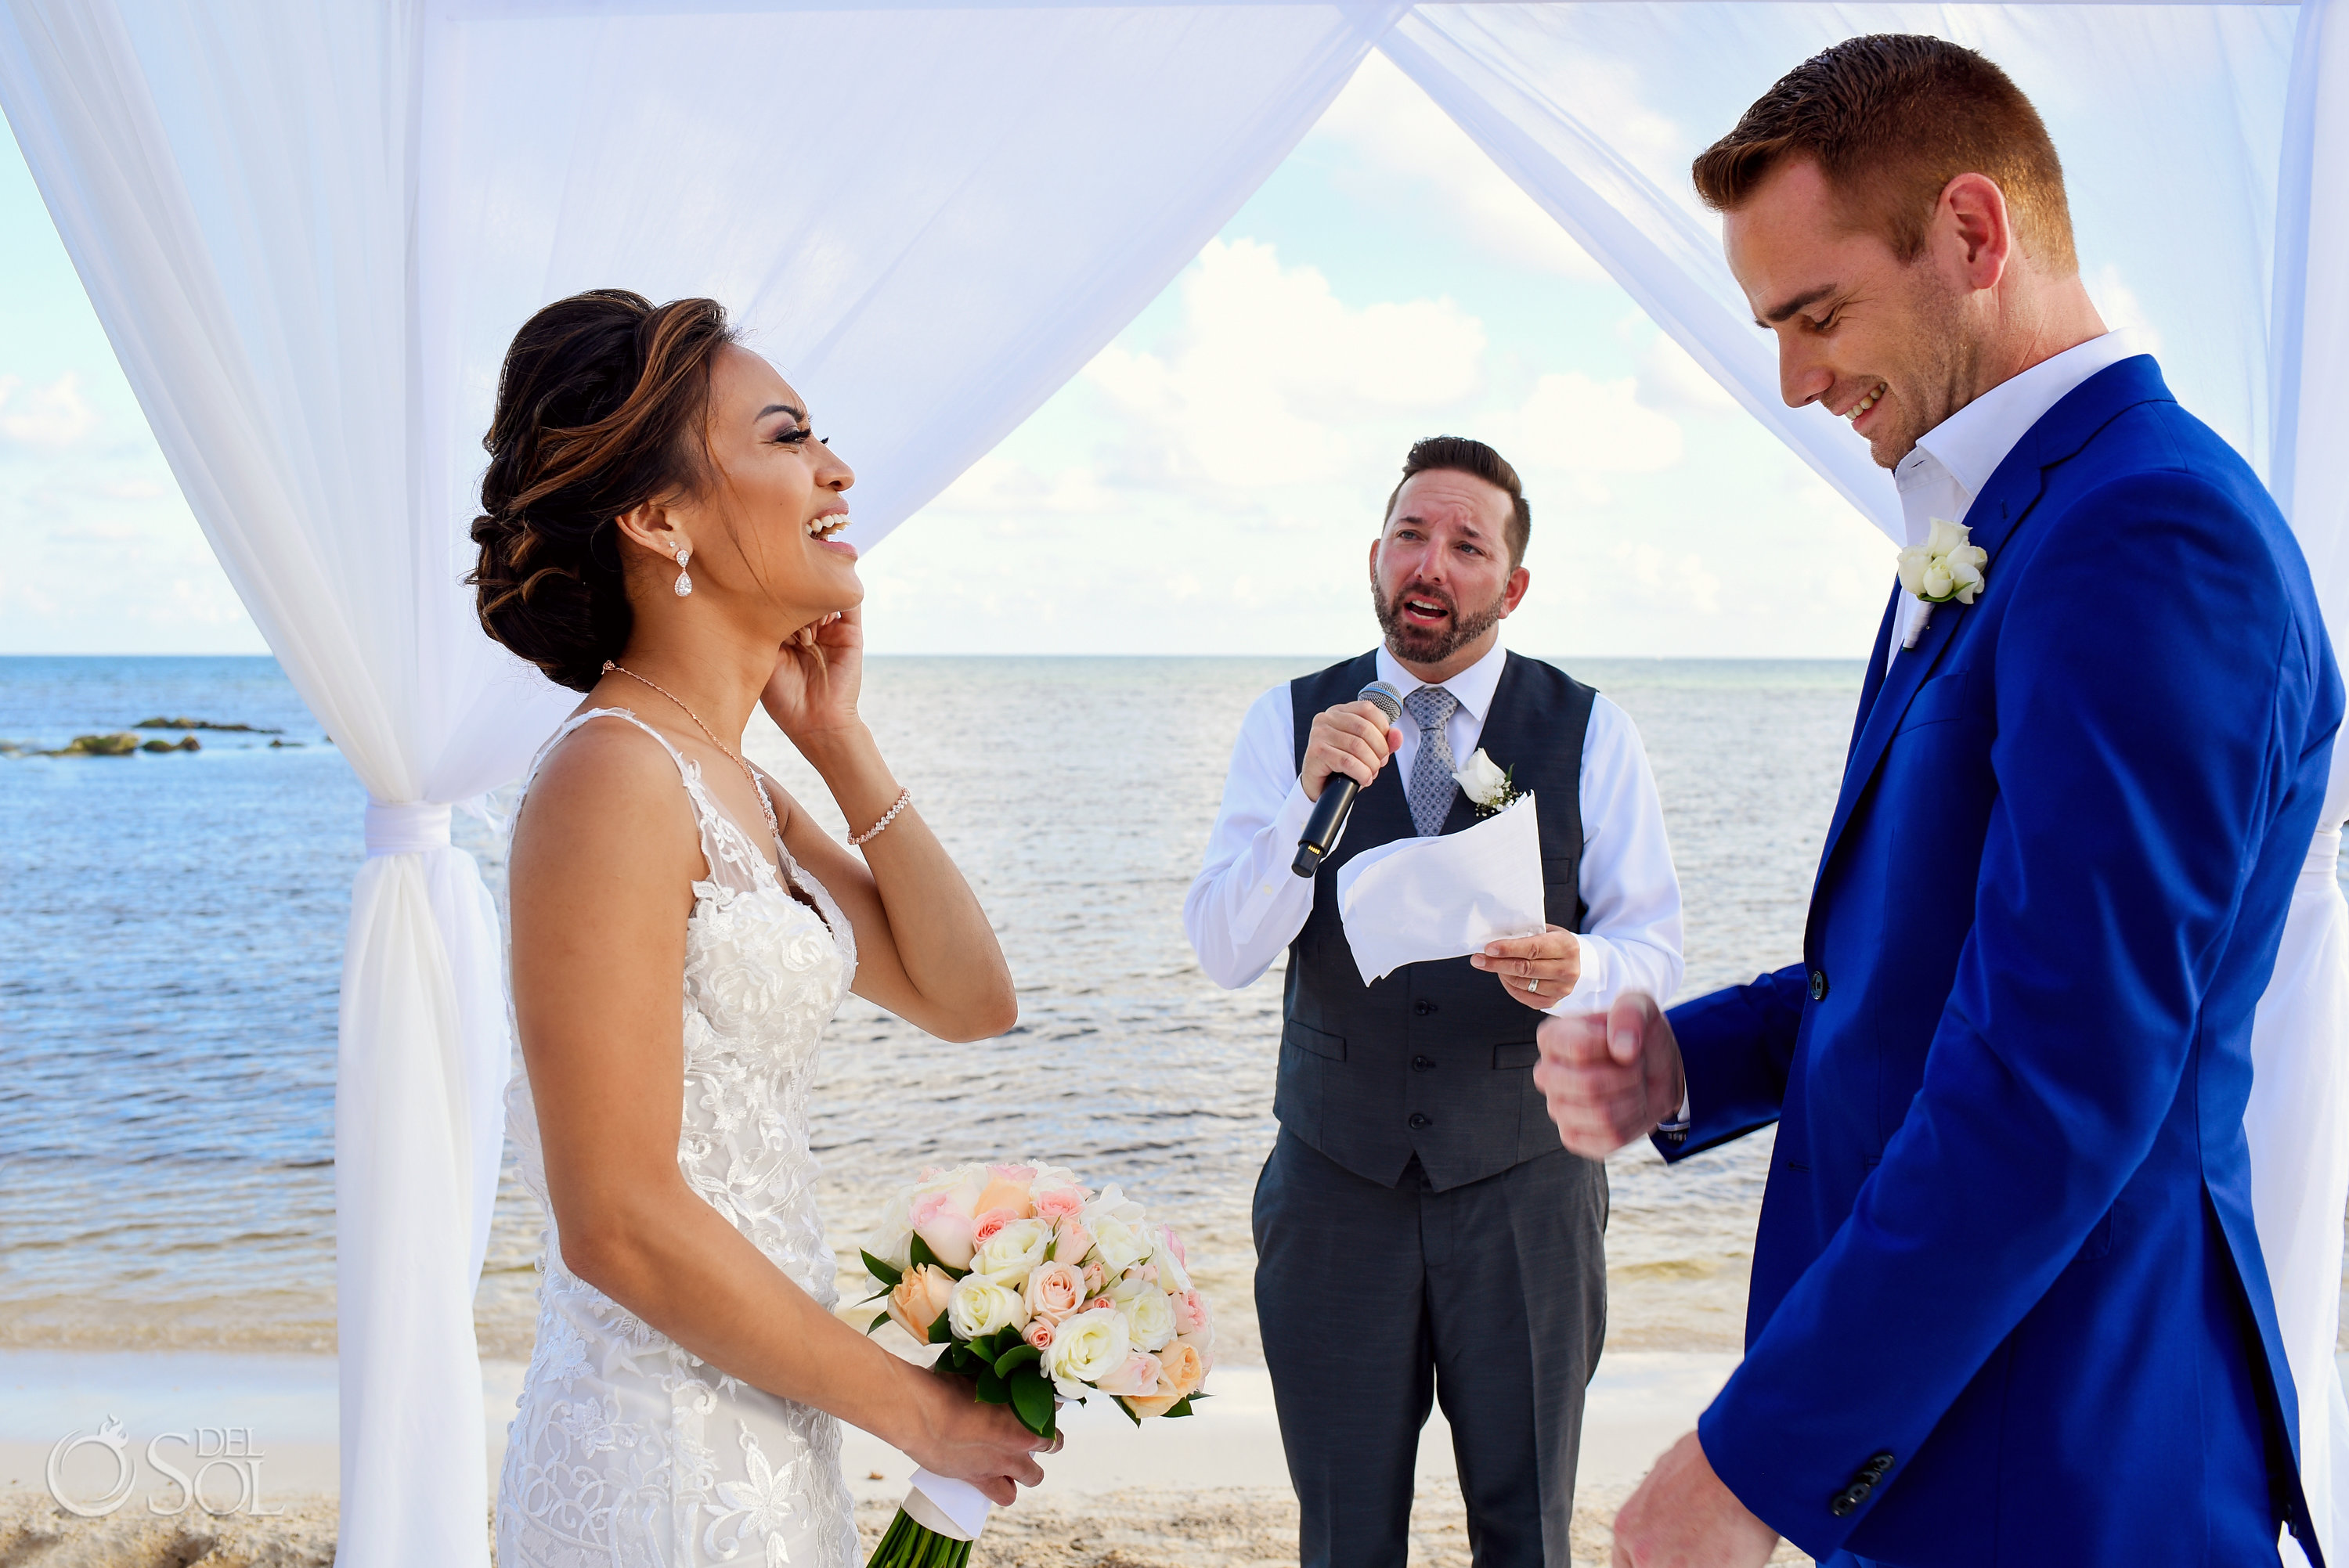 Funny Officiant Speech Romantic Beach Front Wedding Decoration Ceremony Estee Couture Bridal Dress Indochino Groom Suit